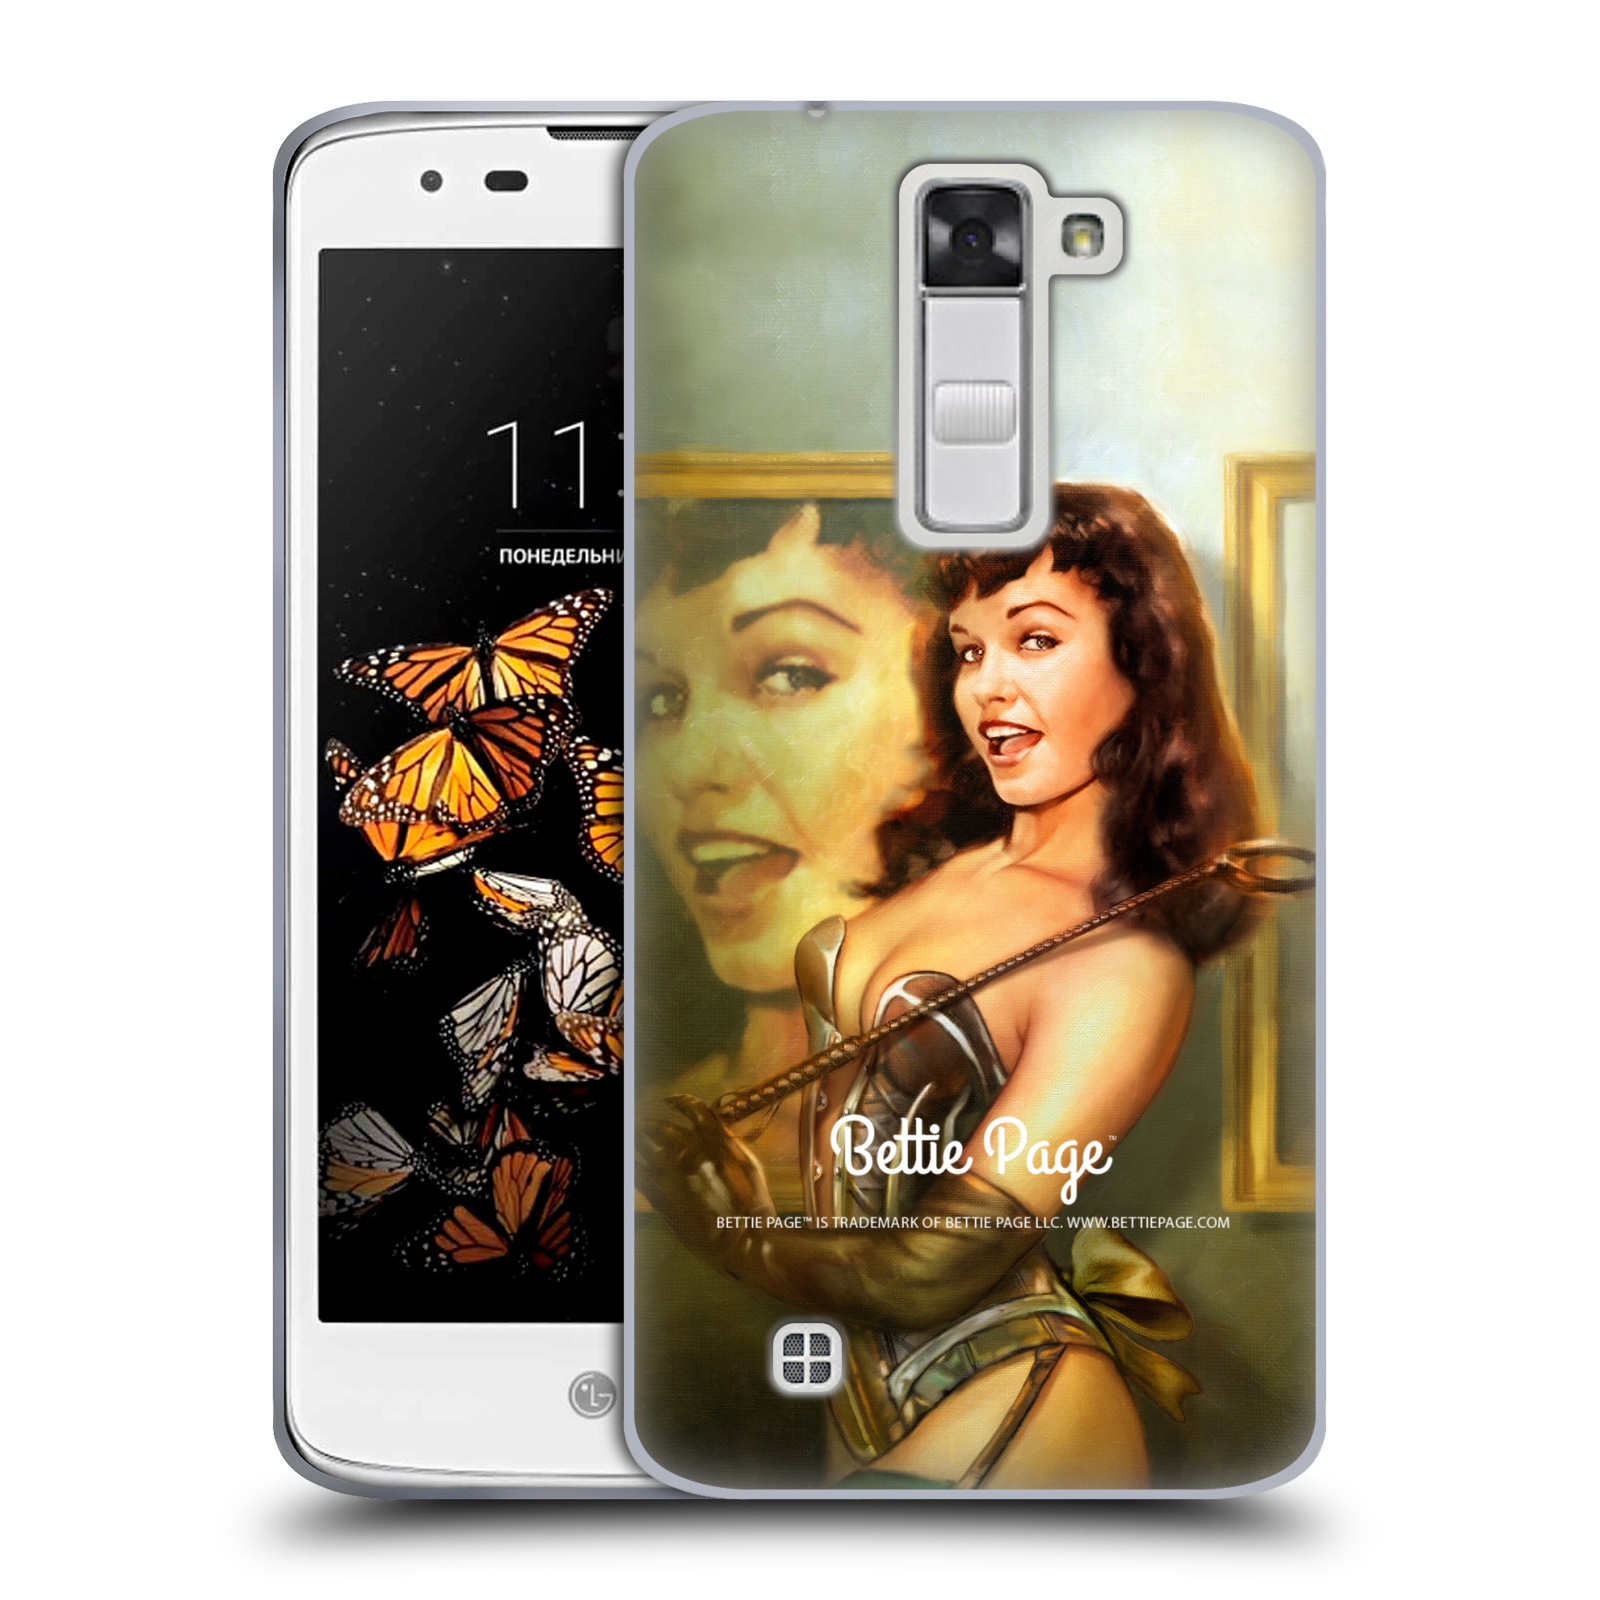 OFFICIAL-SHANNON-MAER-BETTIE-PAGE-SOFT-GEL-CASE-FOR-LG-PHONES-2